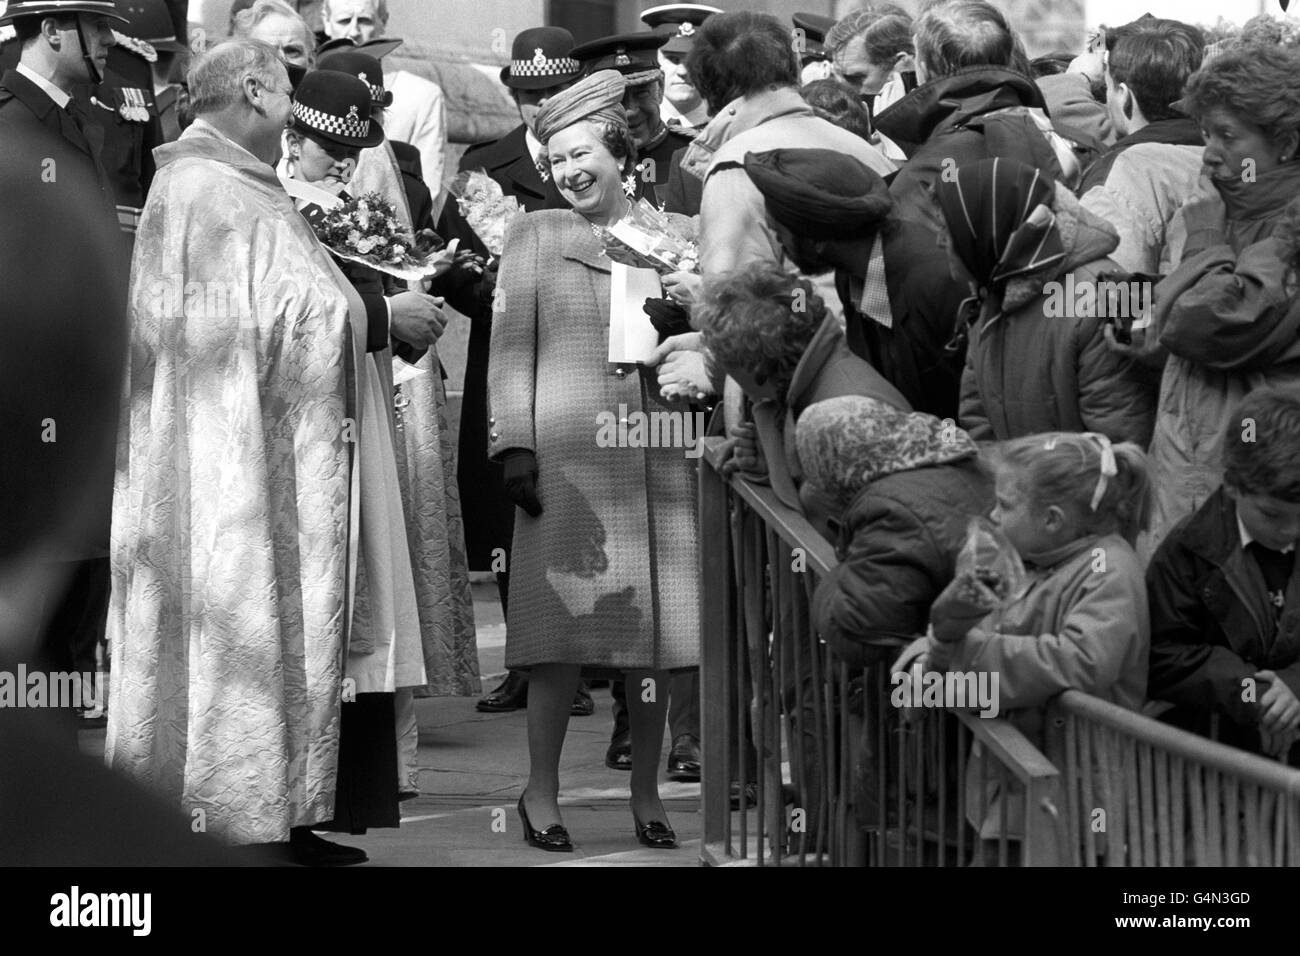 Royalty - Maundy Ceremony - St Philip's Cathedral, Birmingham - Stock Image